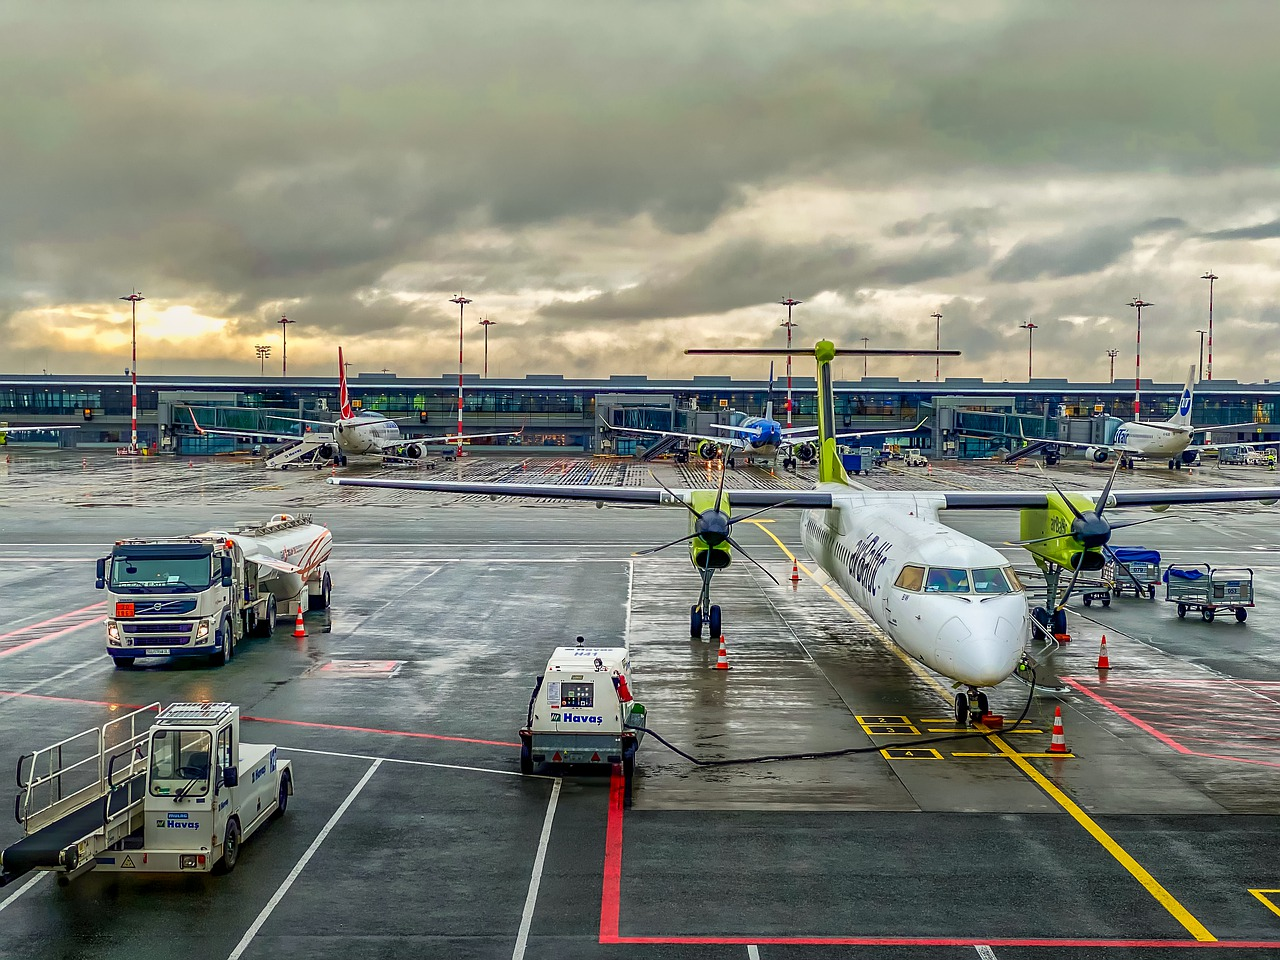 the plane, airport, sky